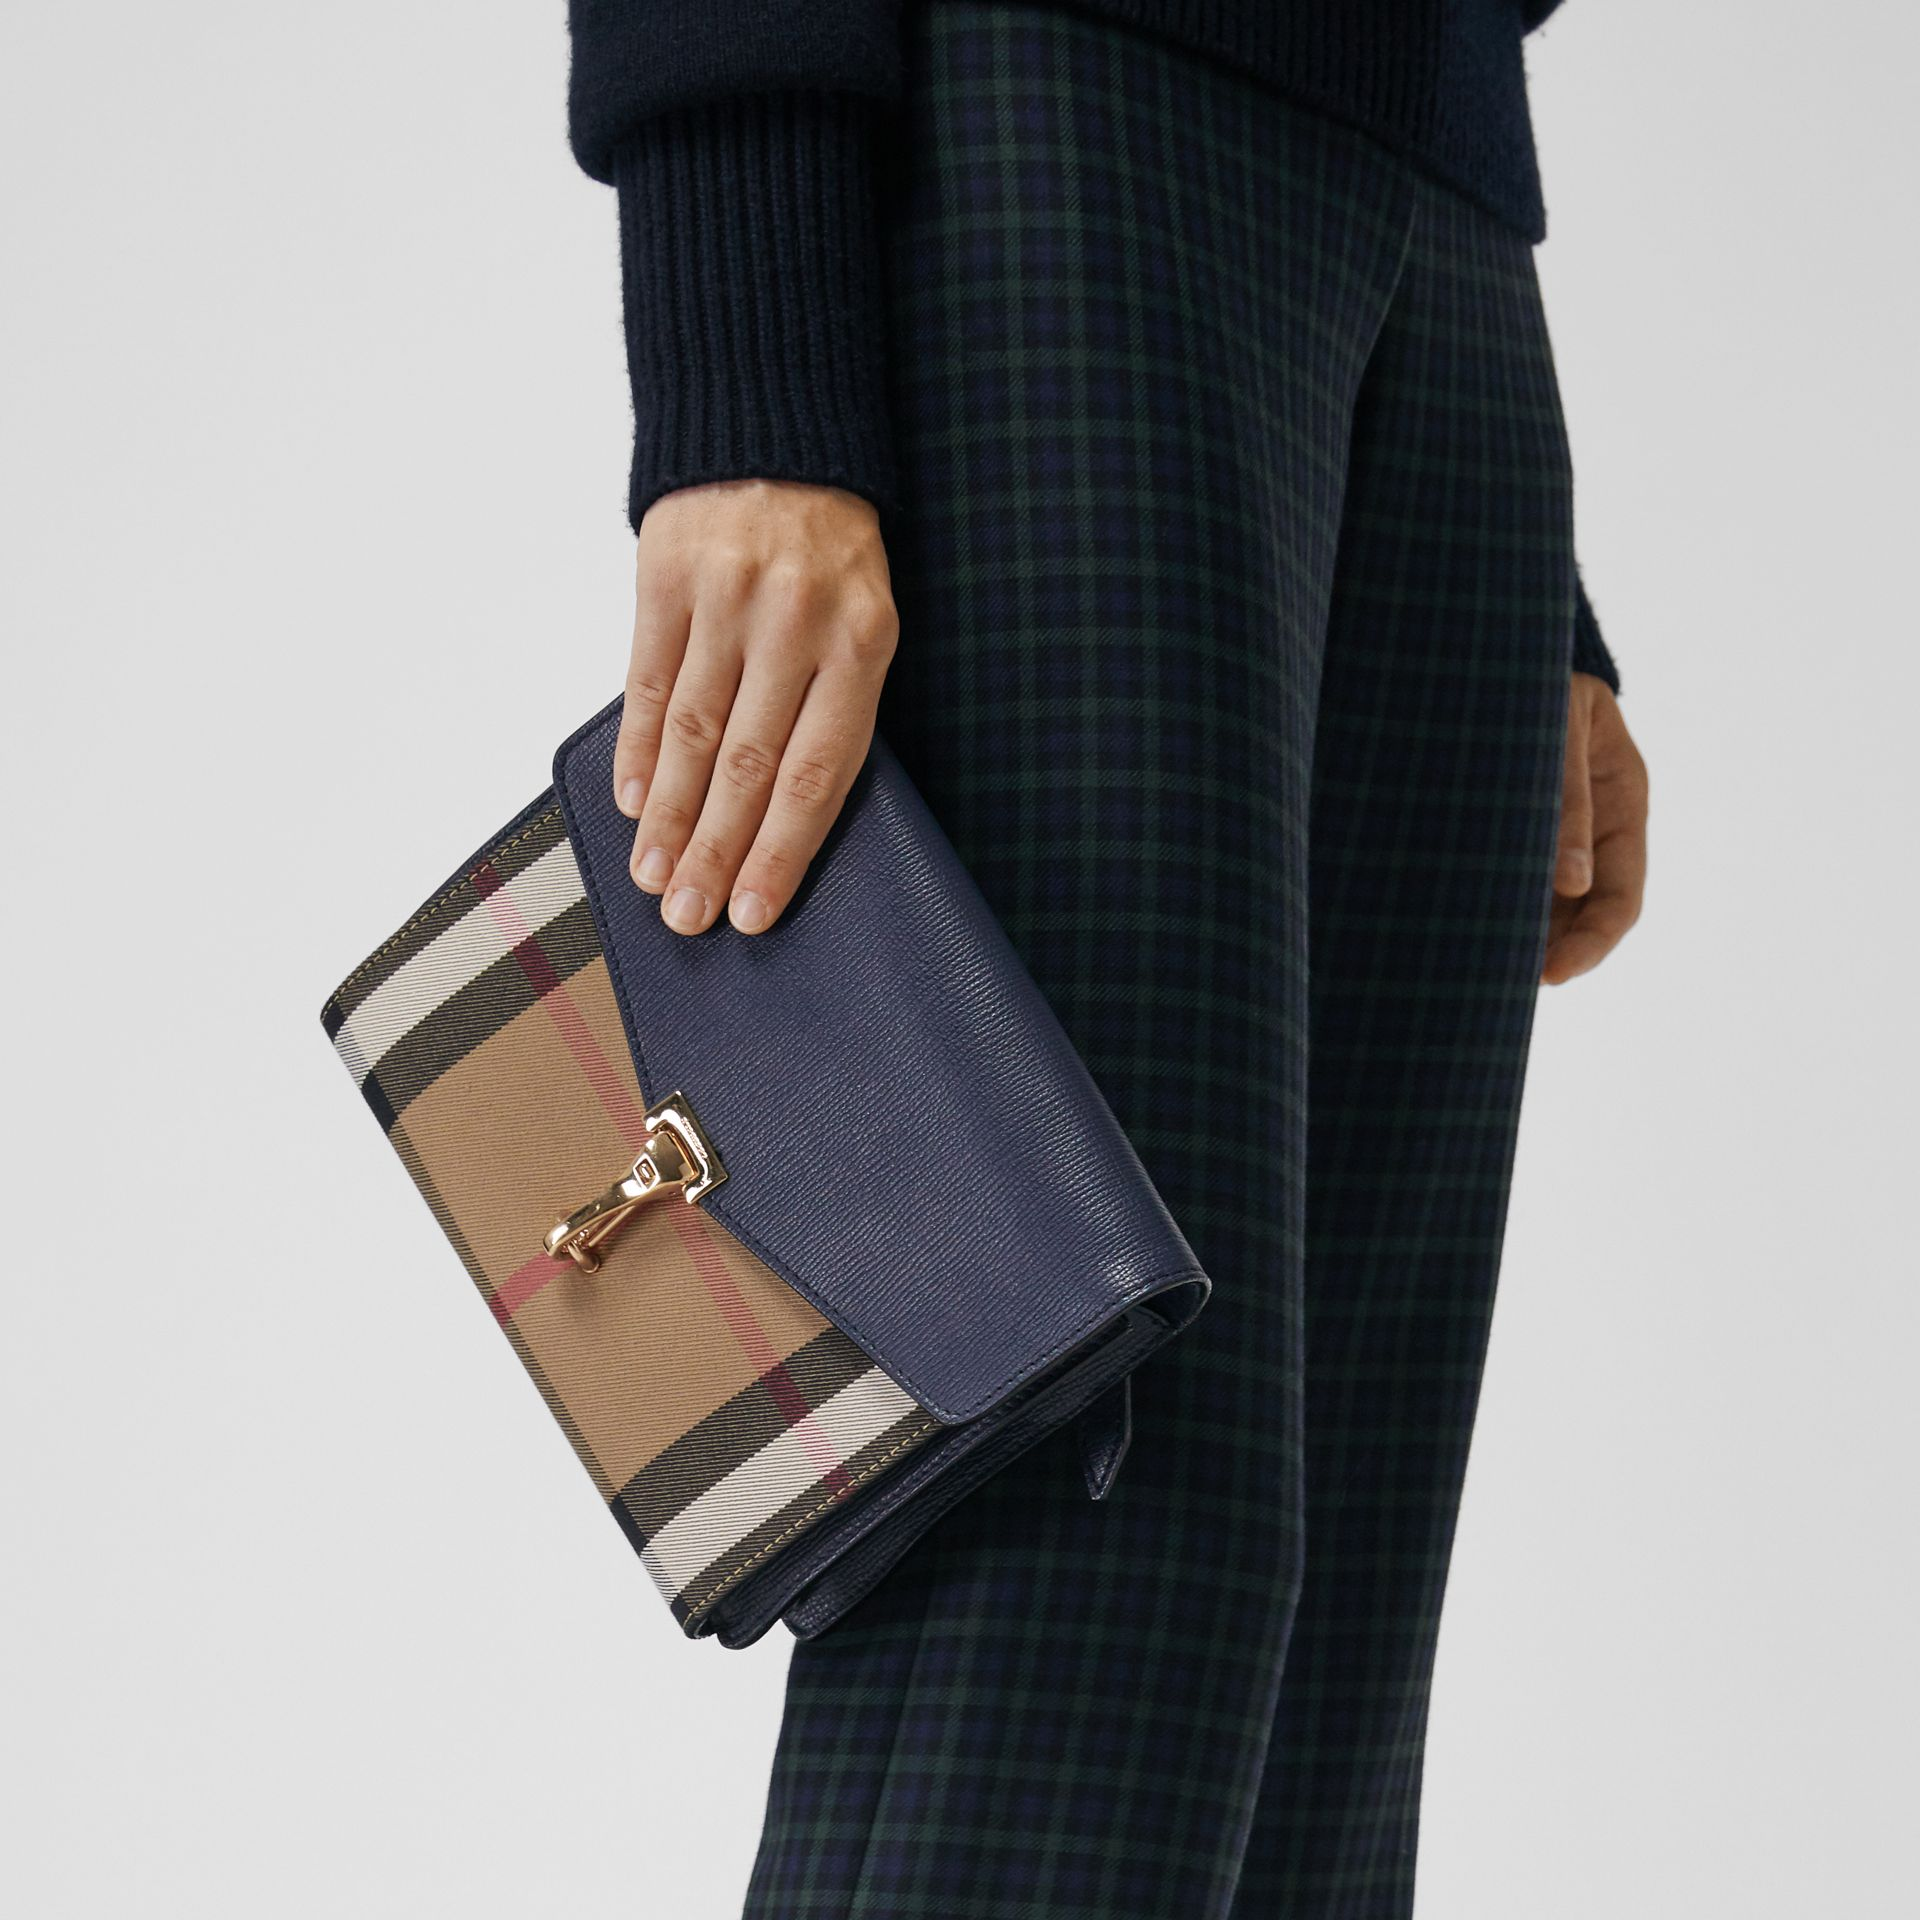 Small Leather and House Check Crossbody Bag in Ink Blue - Women | Burberry Singapore - gallery image 3